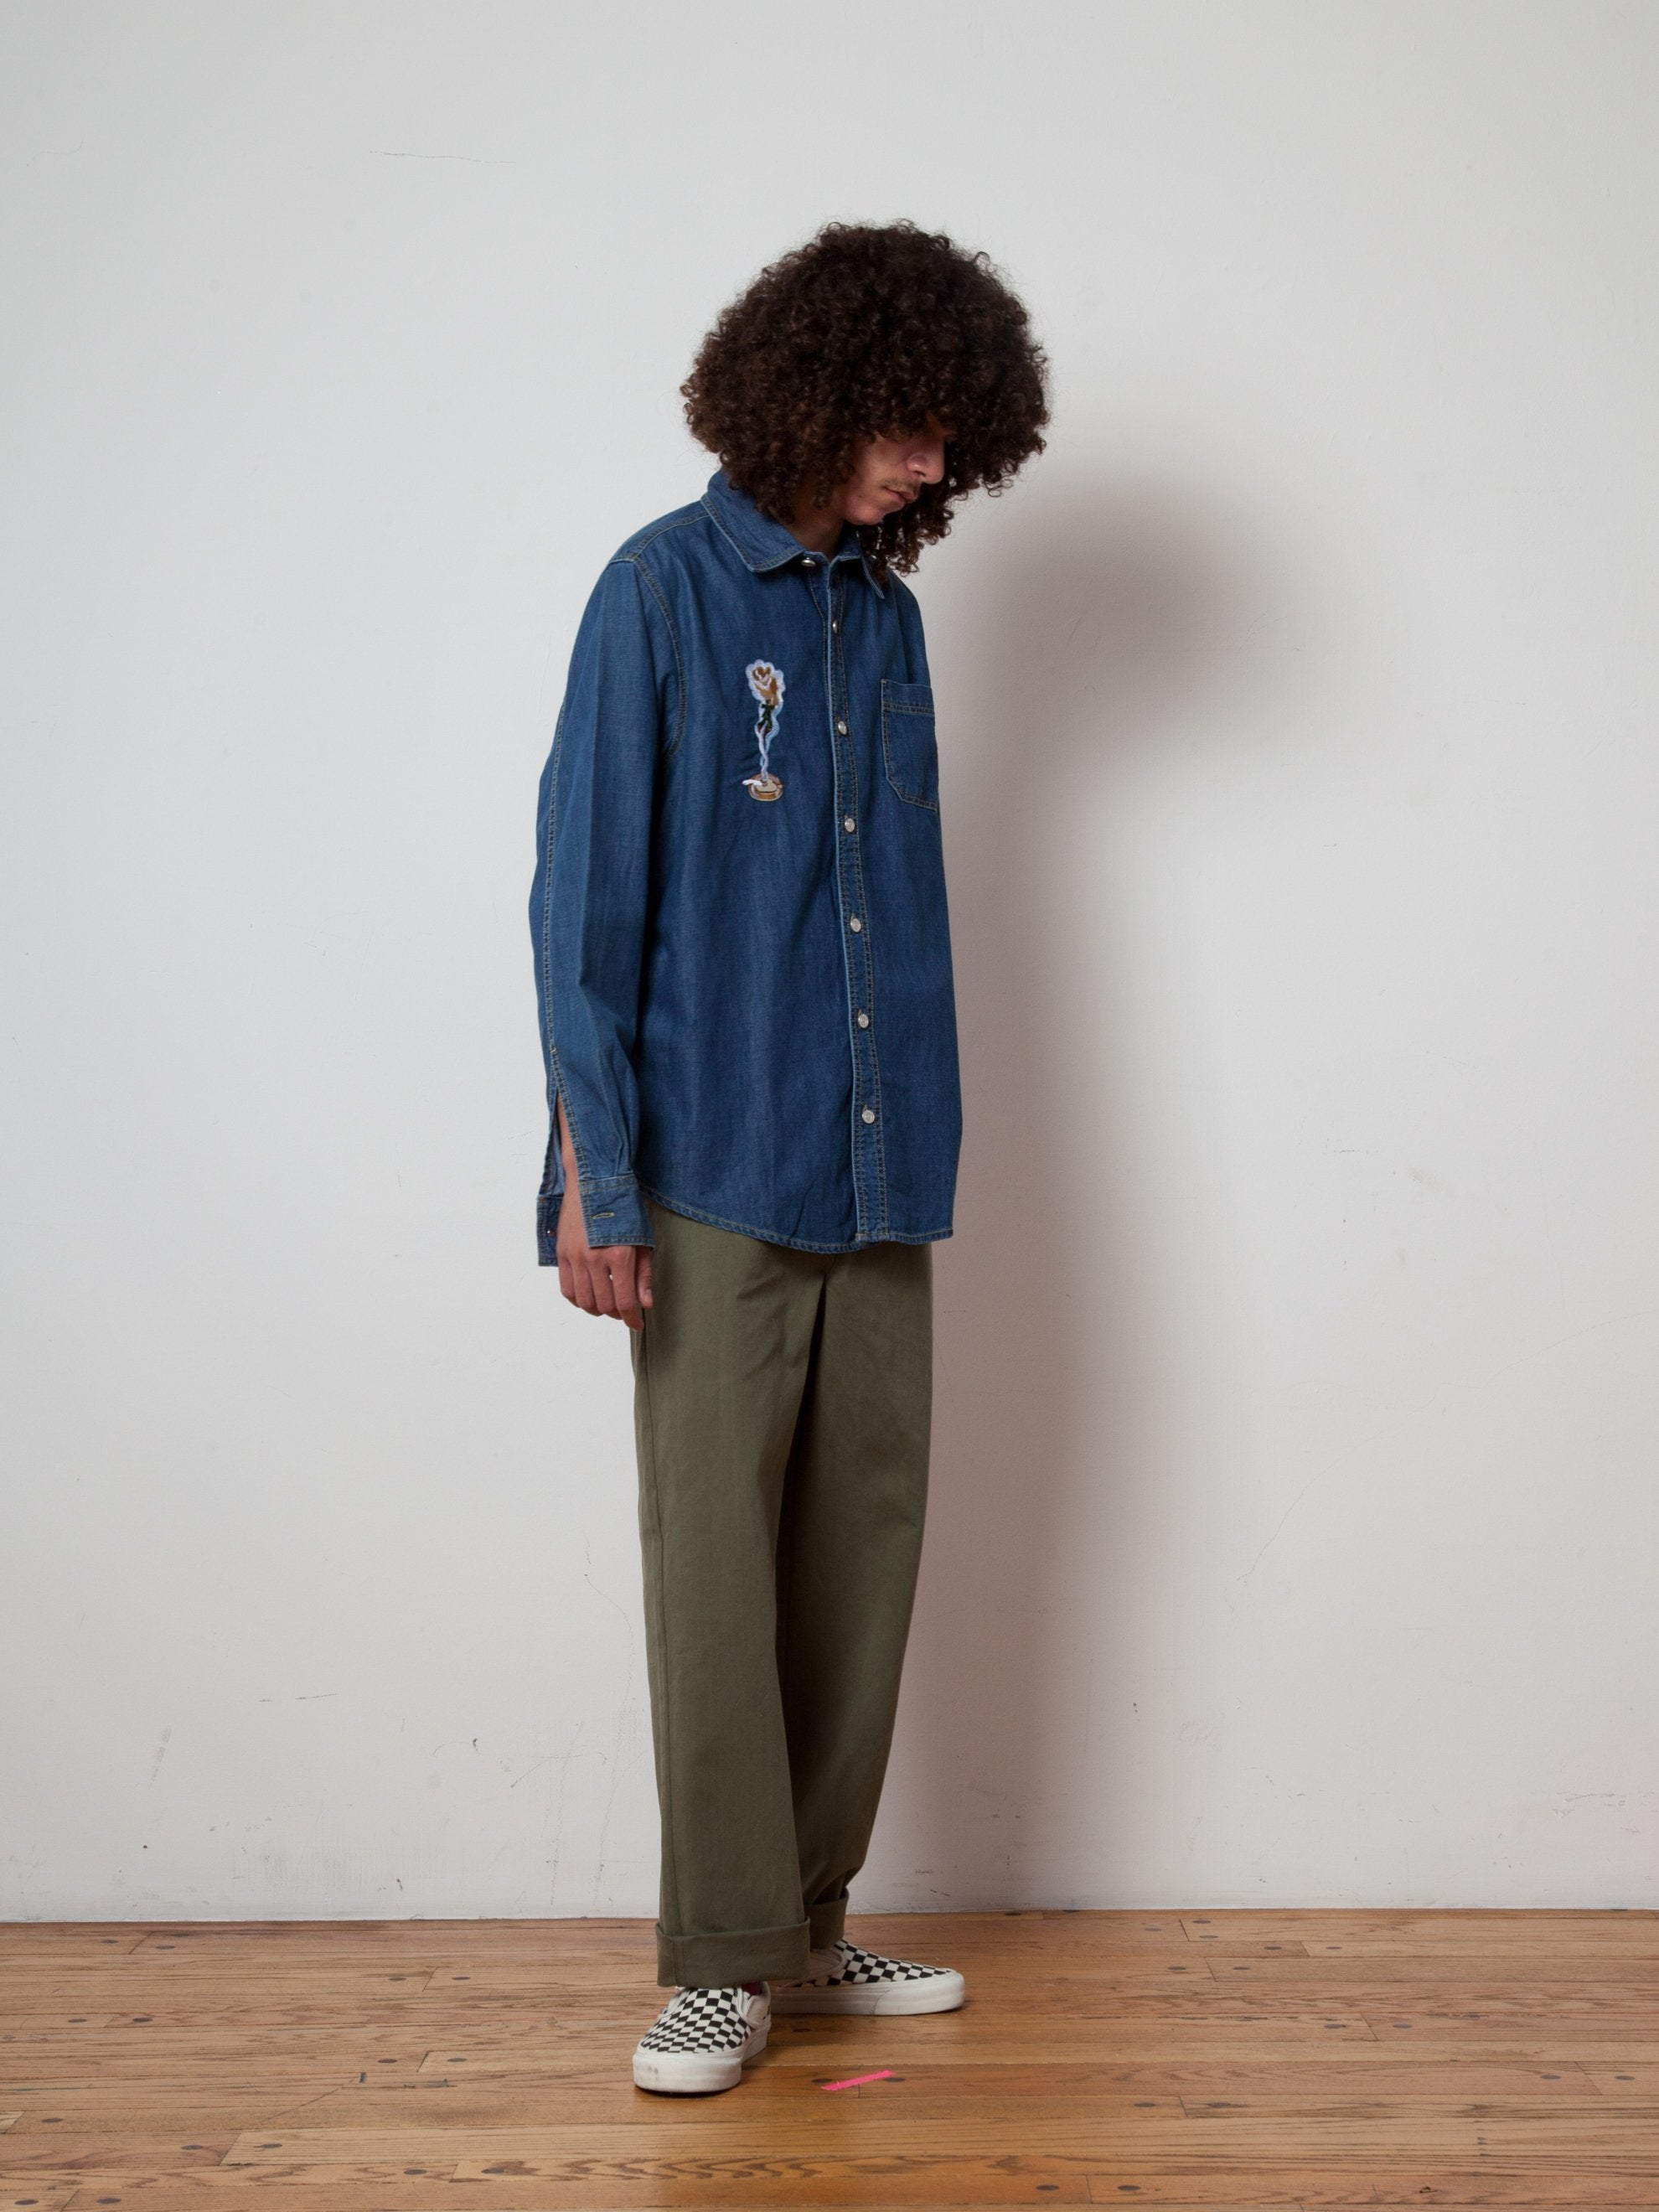 L Smoker's Collection Jean Shirt 3